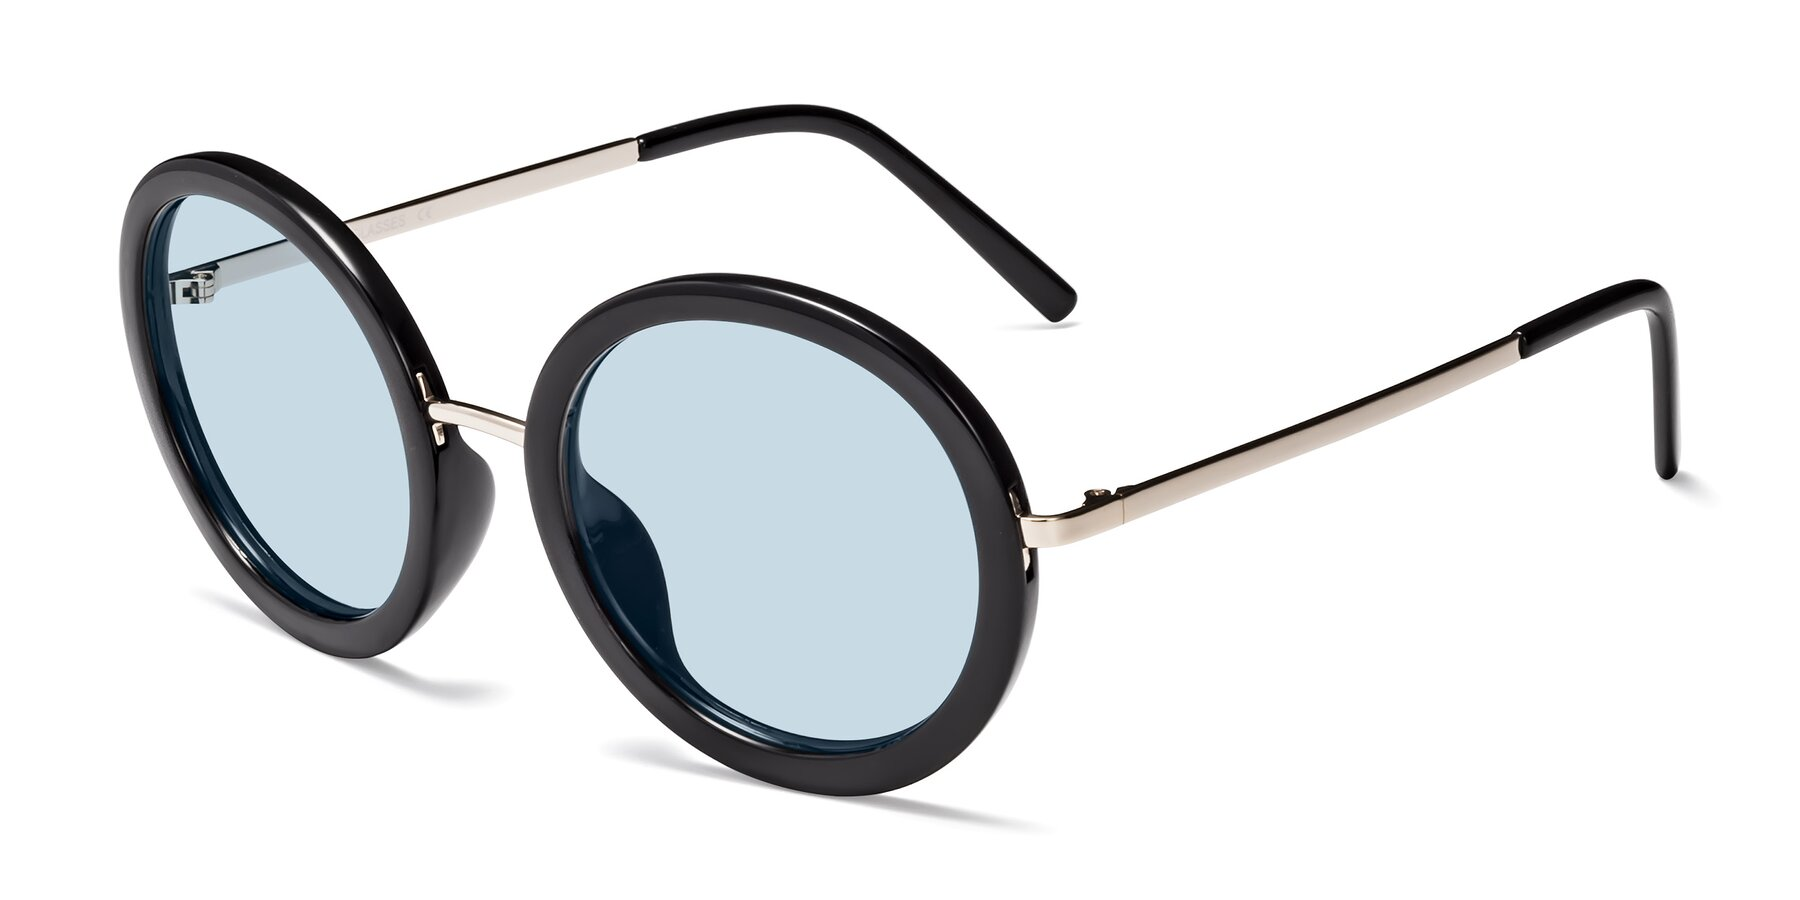 Angle of Bloom in Black with Light Blue Tinted Lenses